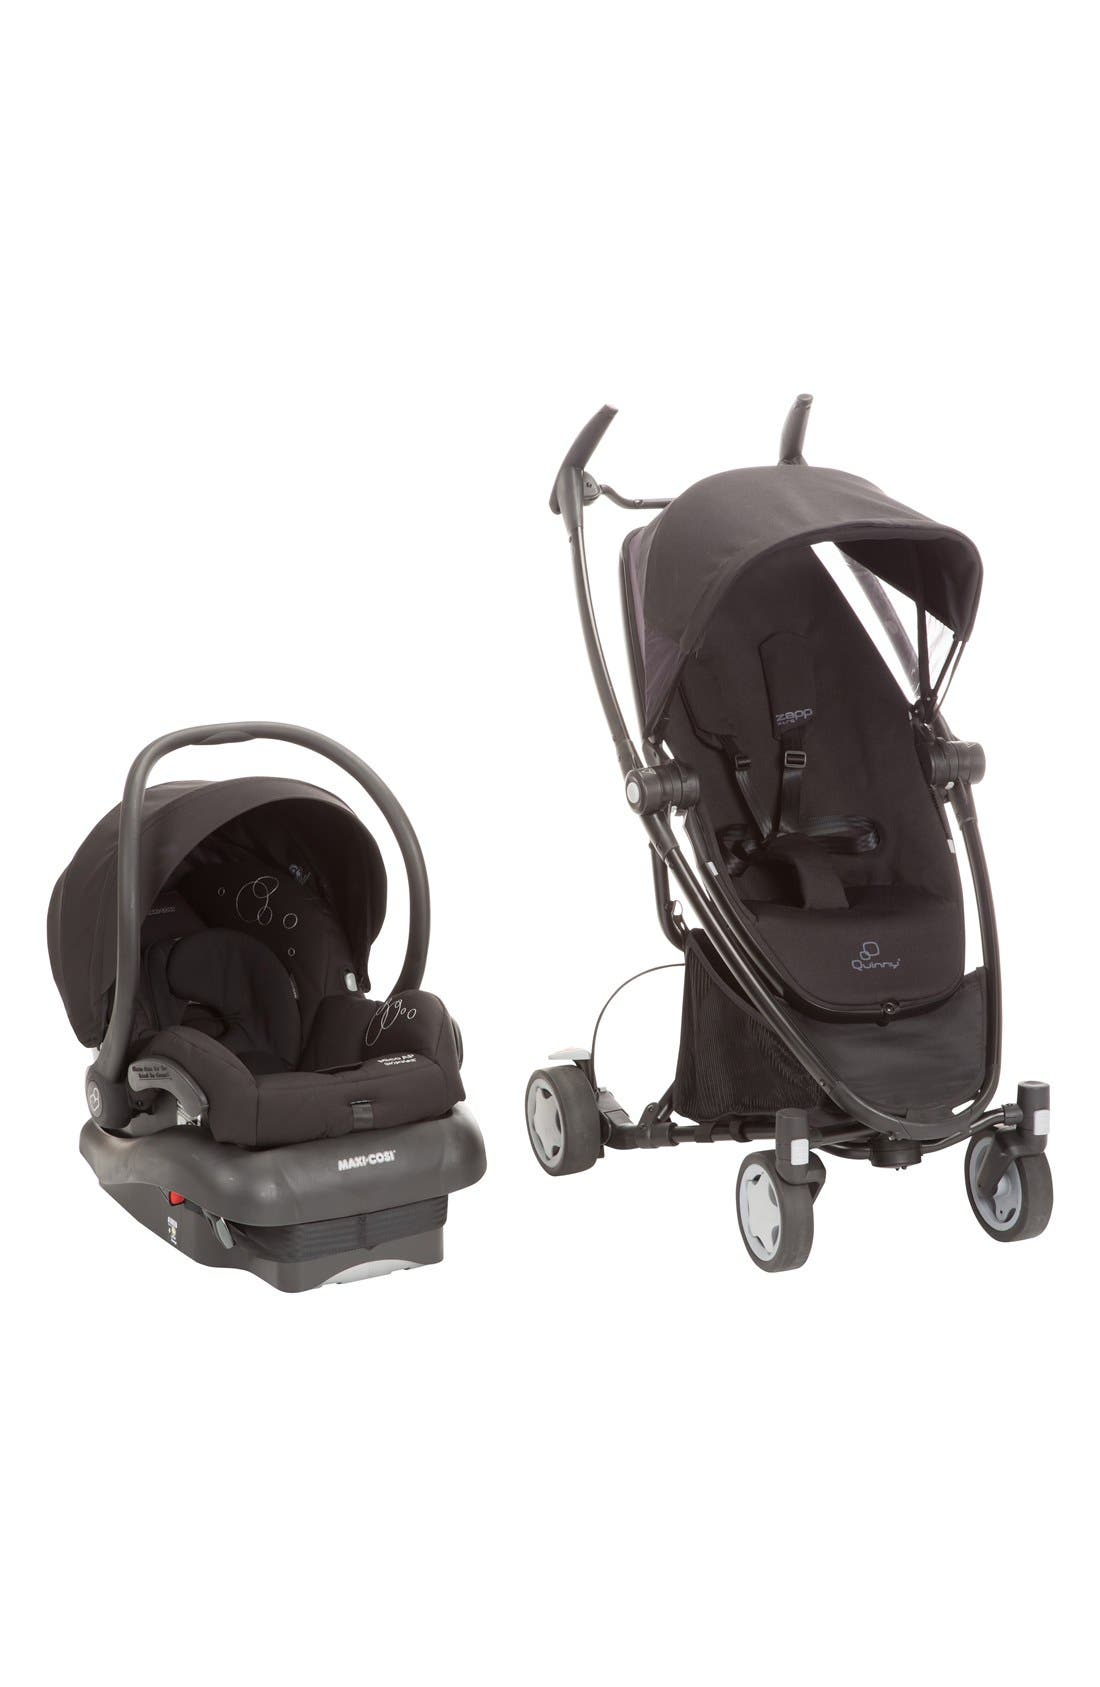 Alternate Image 1 Selected - Maxi-Cosi® 'Mico Air Protect™' Car Seat & Quinny® 'Zapp Xtra™' Stroller Travel System